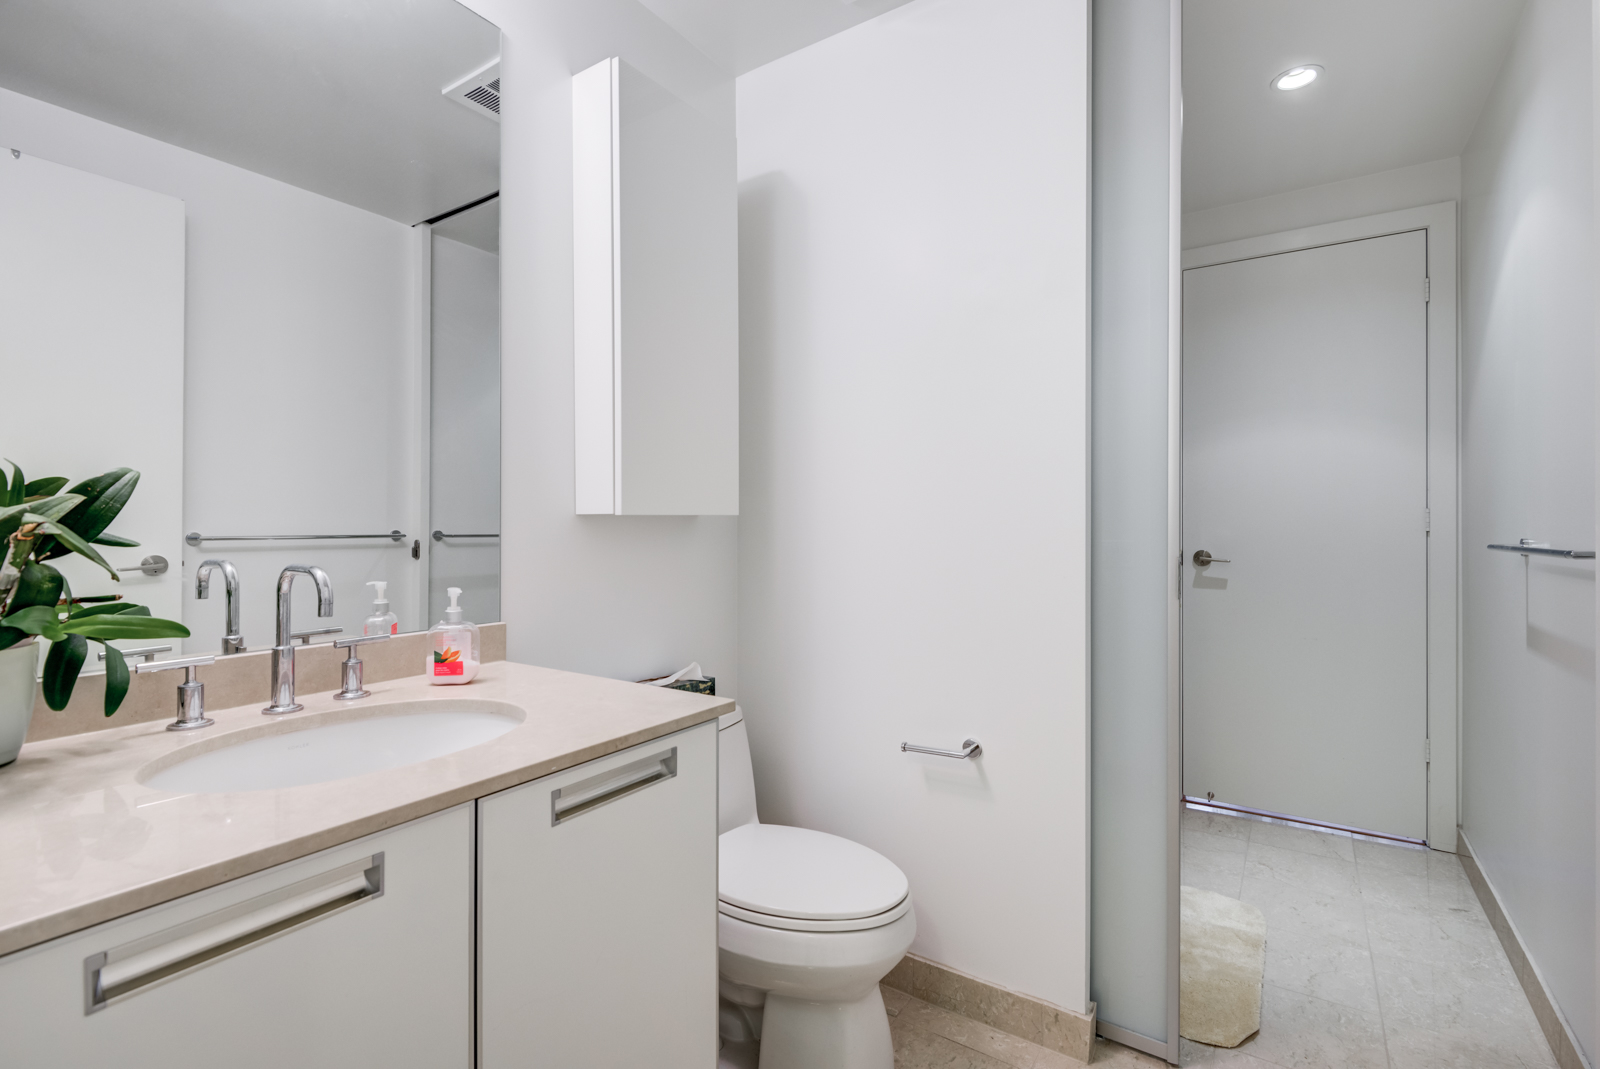 Our first look at 33 Charles St E Unit 911 bathroom. We see the sink, mirror and toilet.